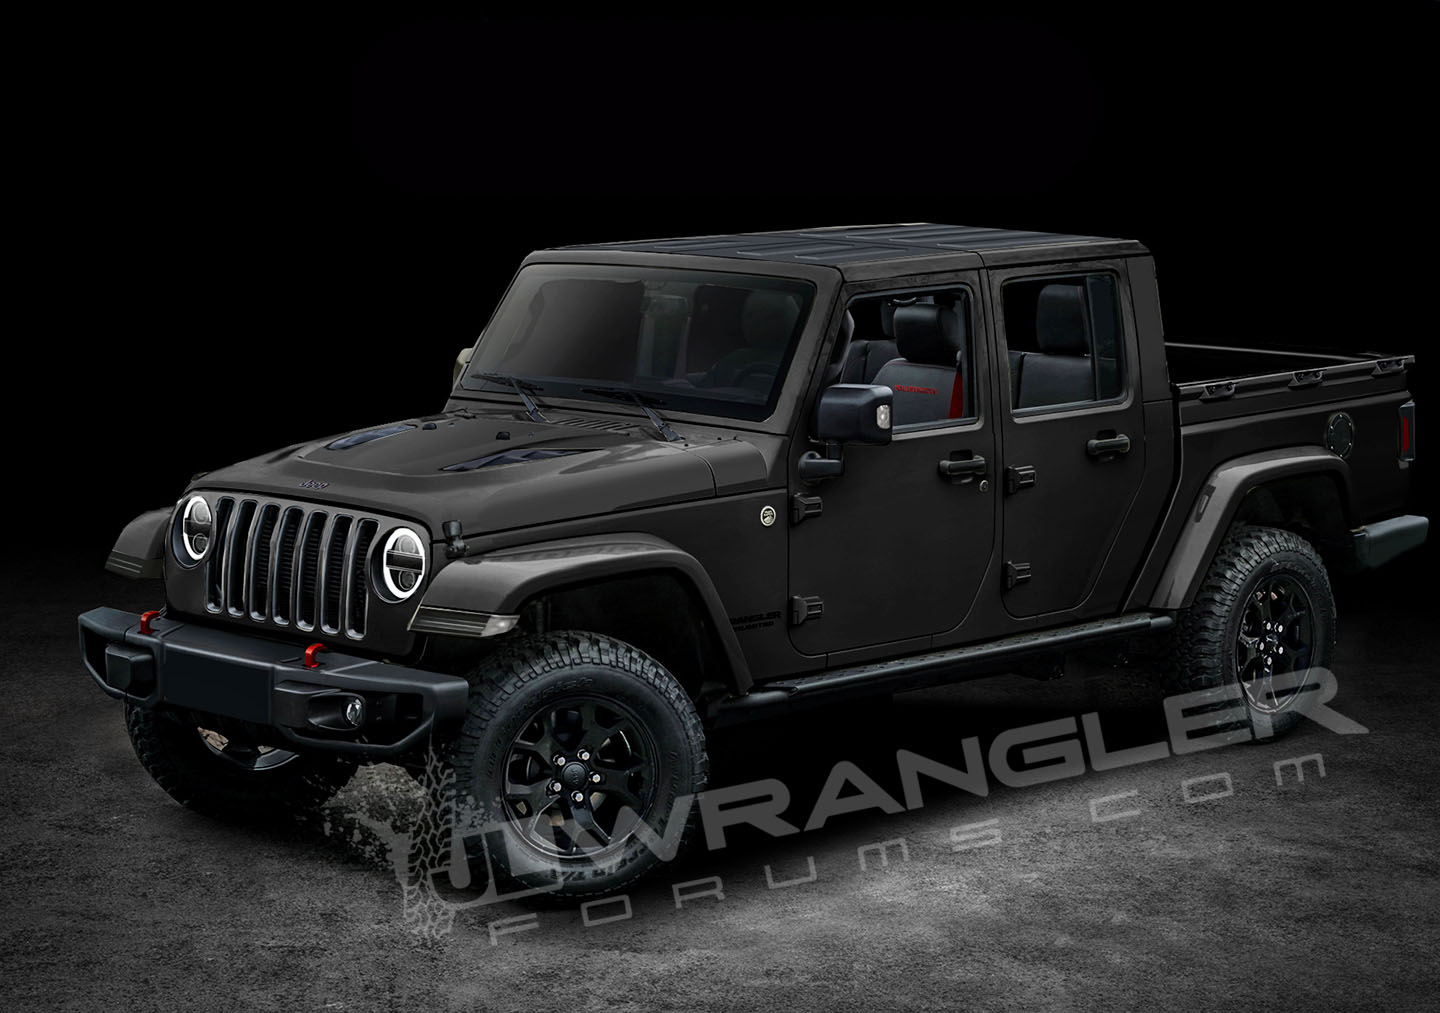 our latest 2019 jeep jt pickup info and preview images 2018 jeep wrangler forums jl jlu. Black Bedroom Furniture Sets. Home Design Ideas